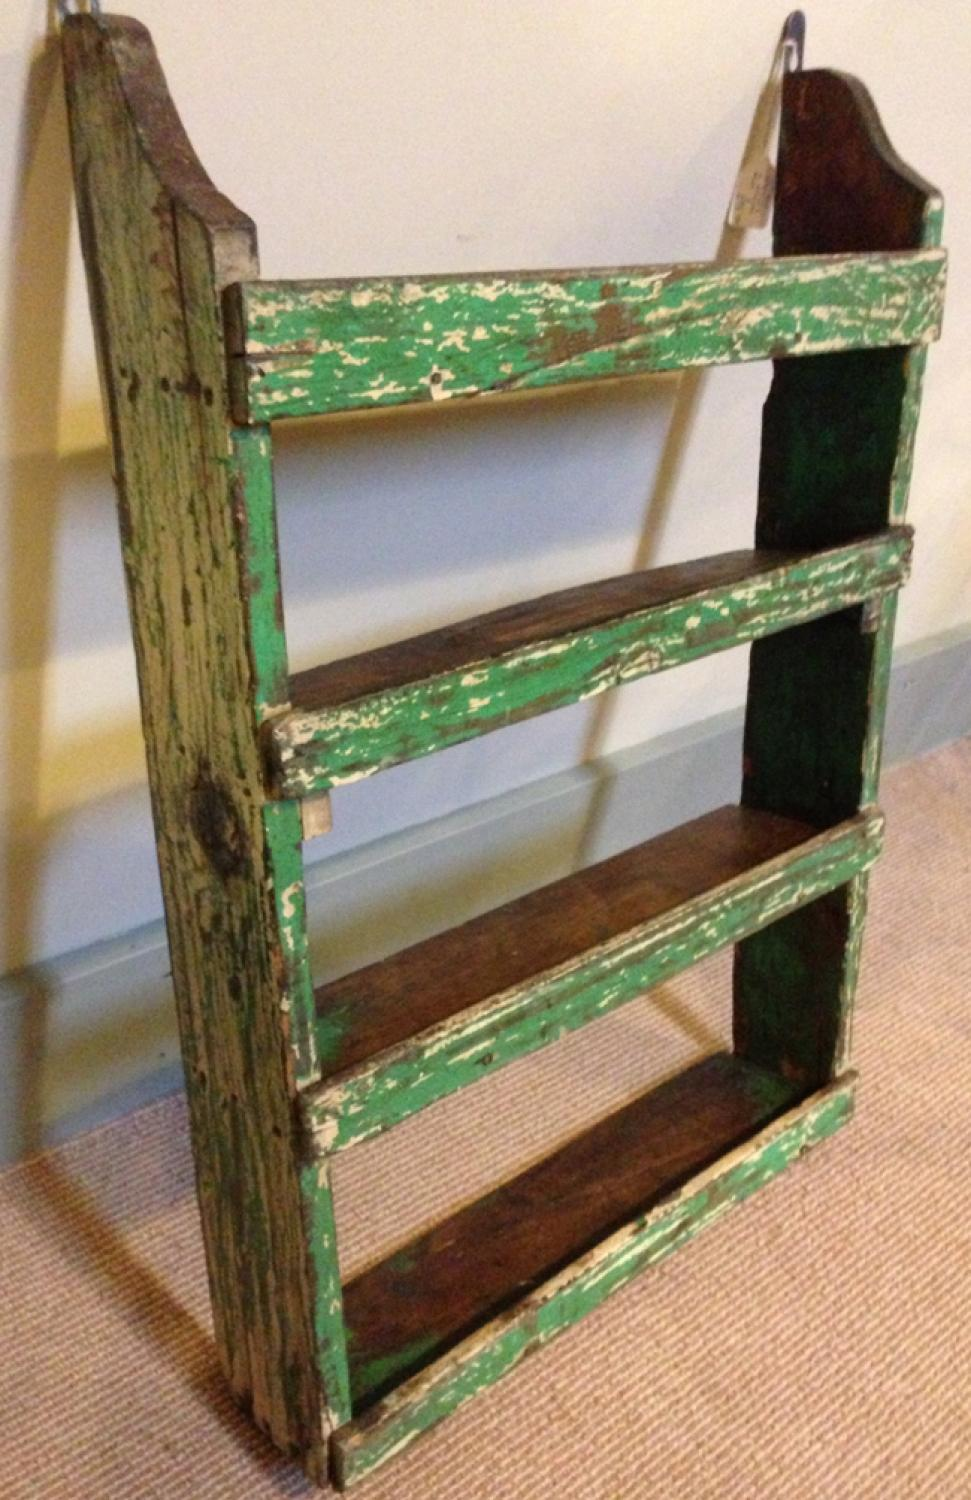 19th Cent Shelves in Worn Green Paint